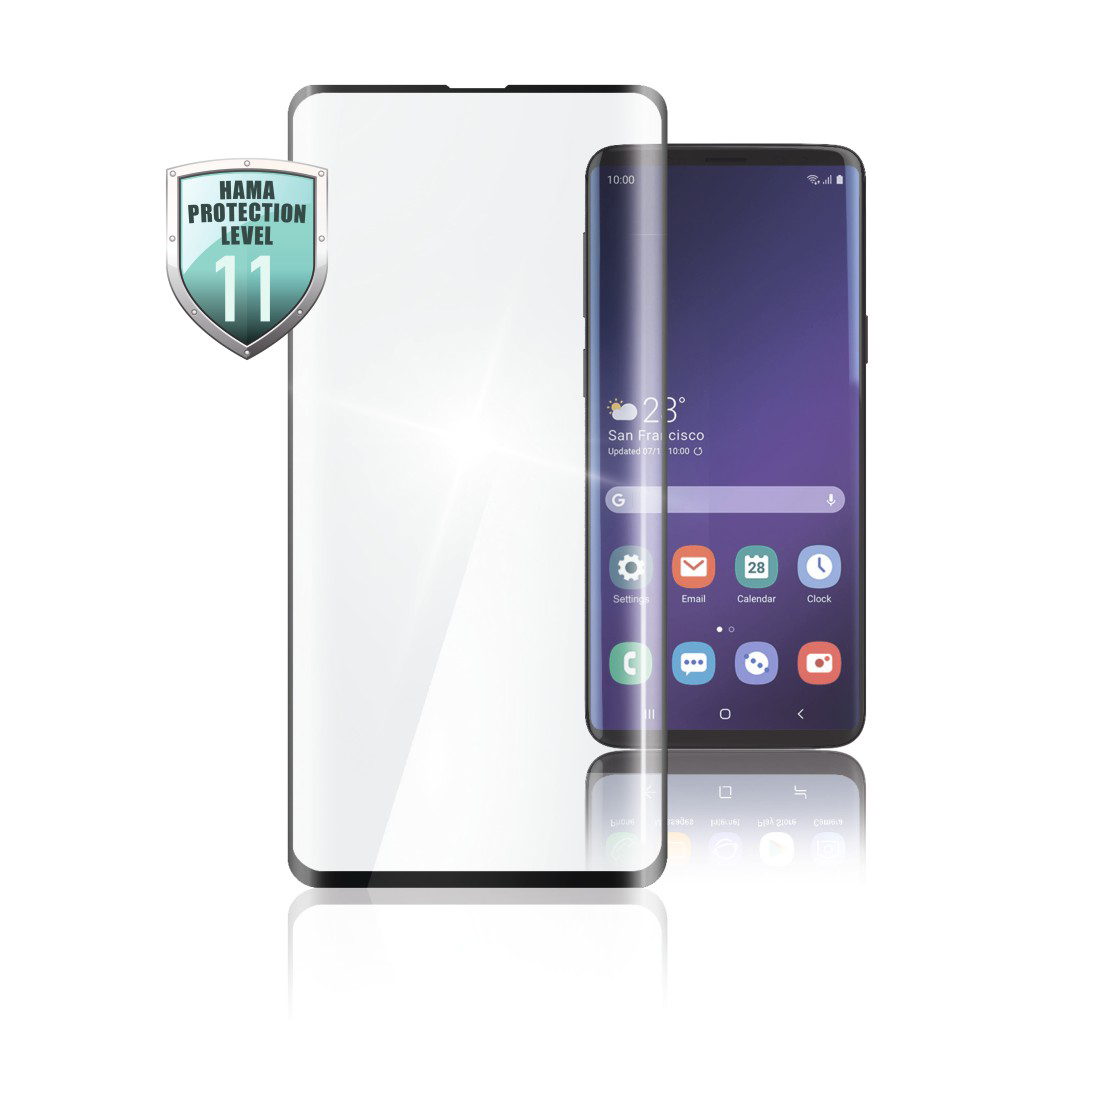 abx High-Res Image - Hama, Verre de protection Full-Screen 3D pour Samsung Galaxy S10e, noir